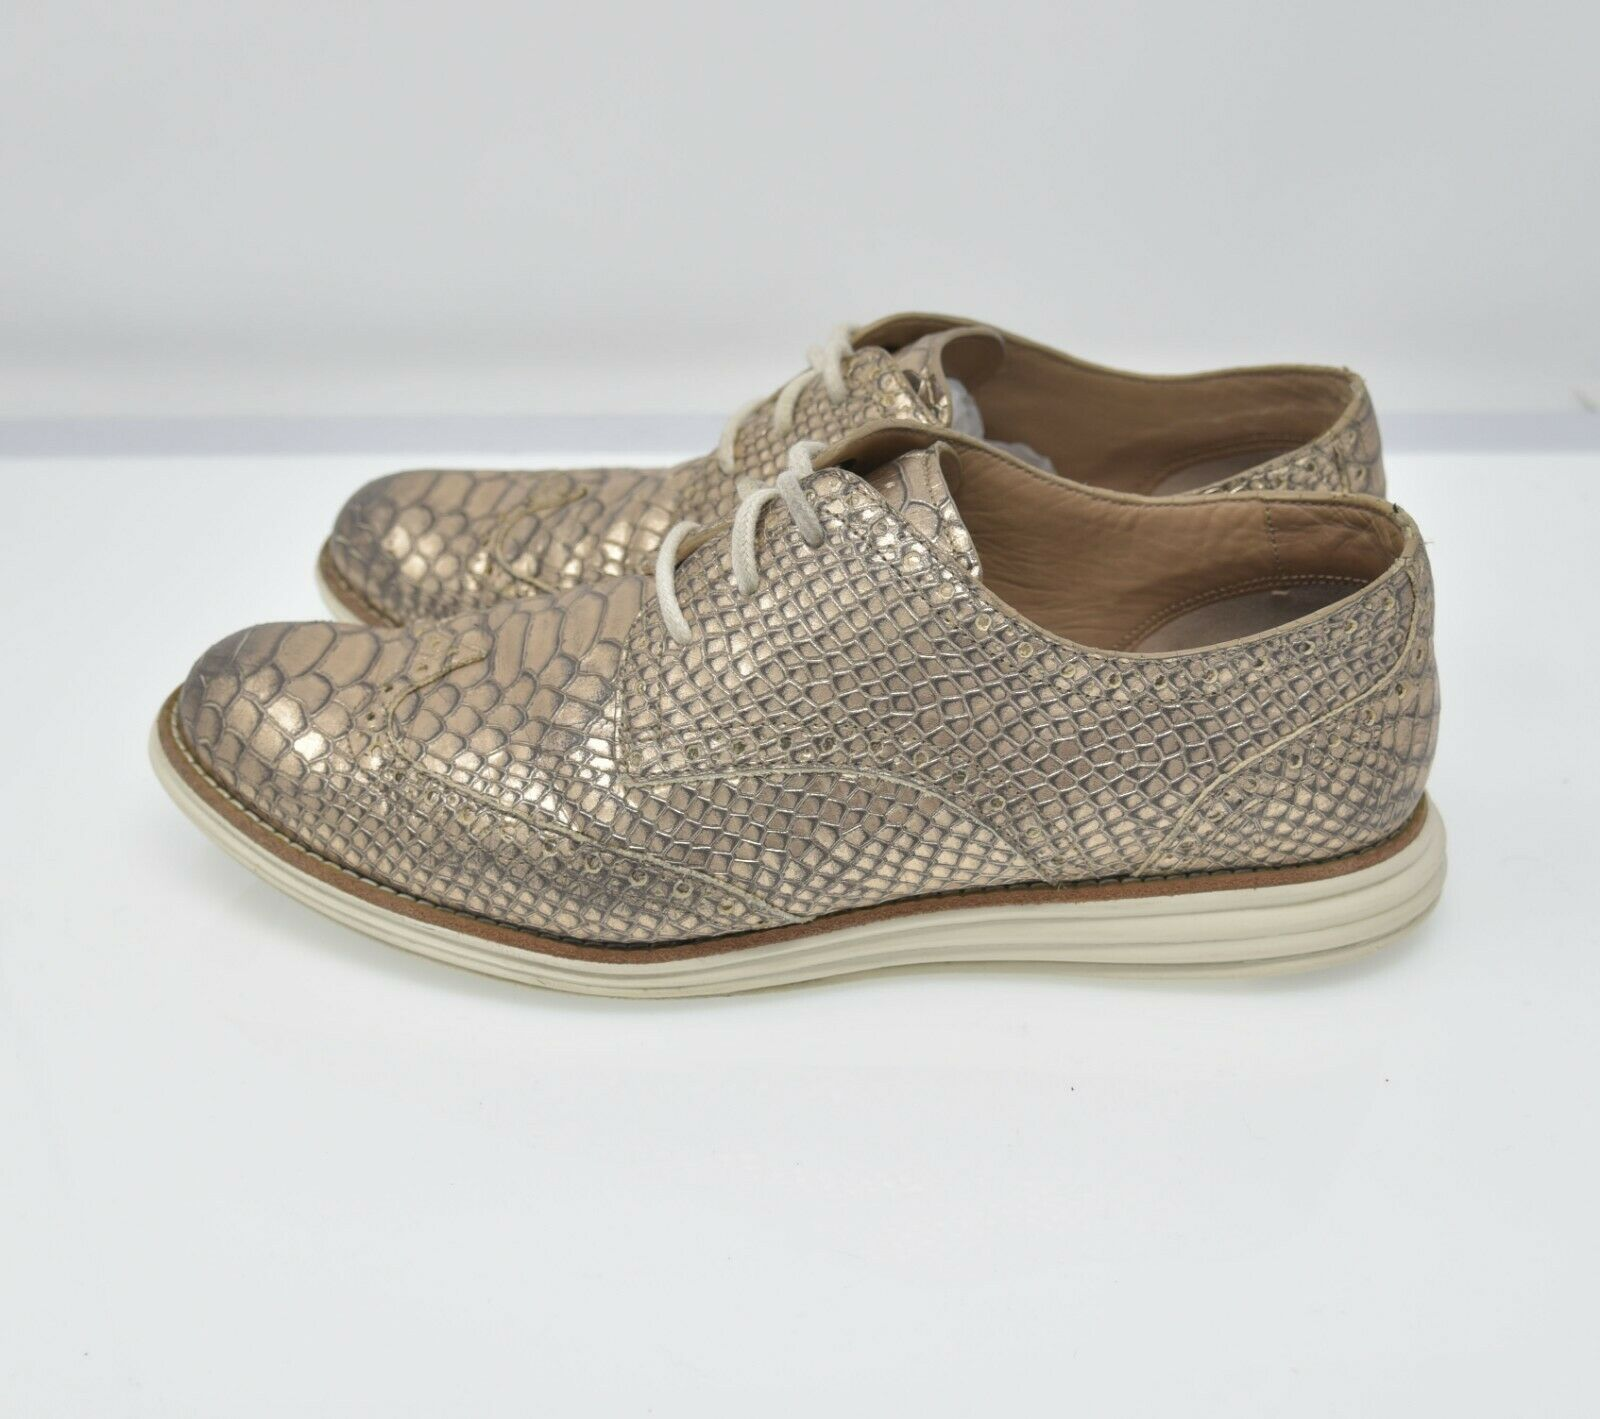 Cole Haan Lunarlon Lunargrand Women's Sz 8B Gold Scale Lace Up Comfort Walking